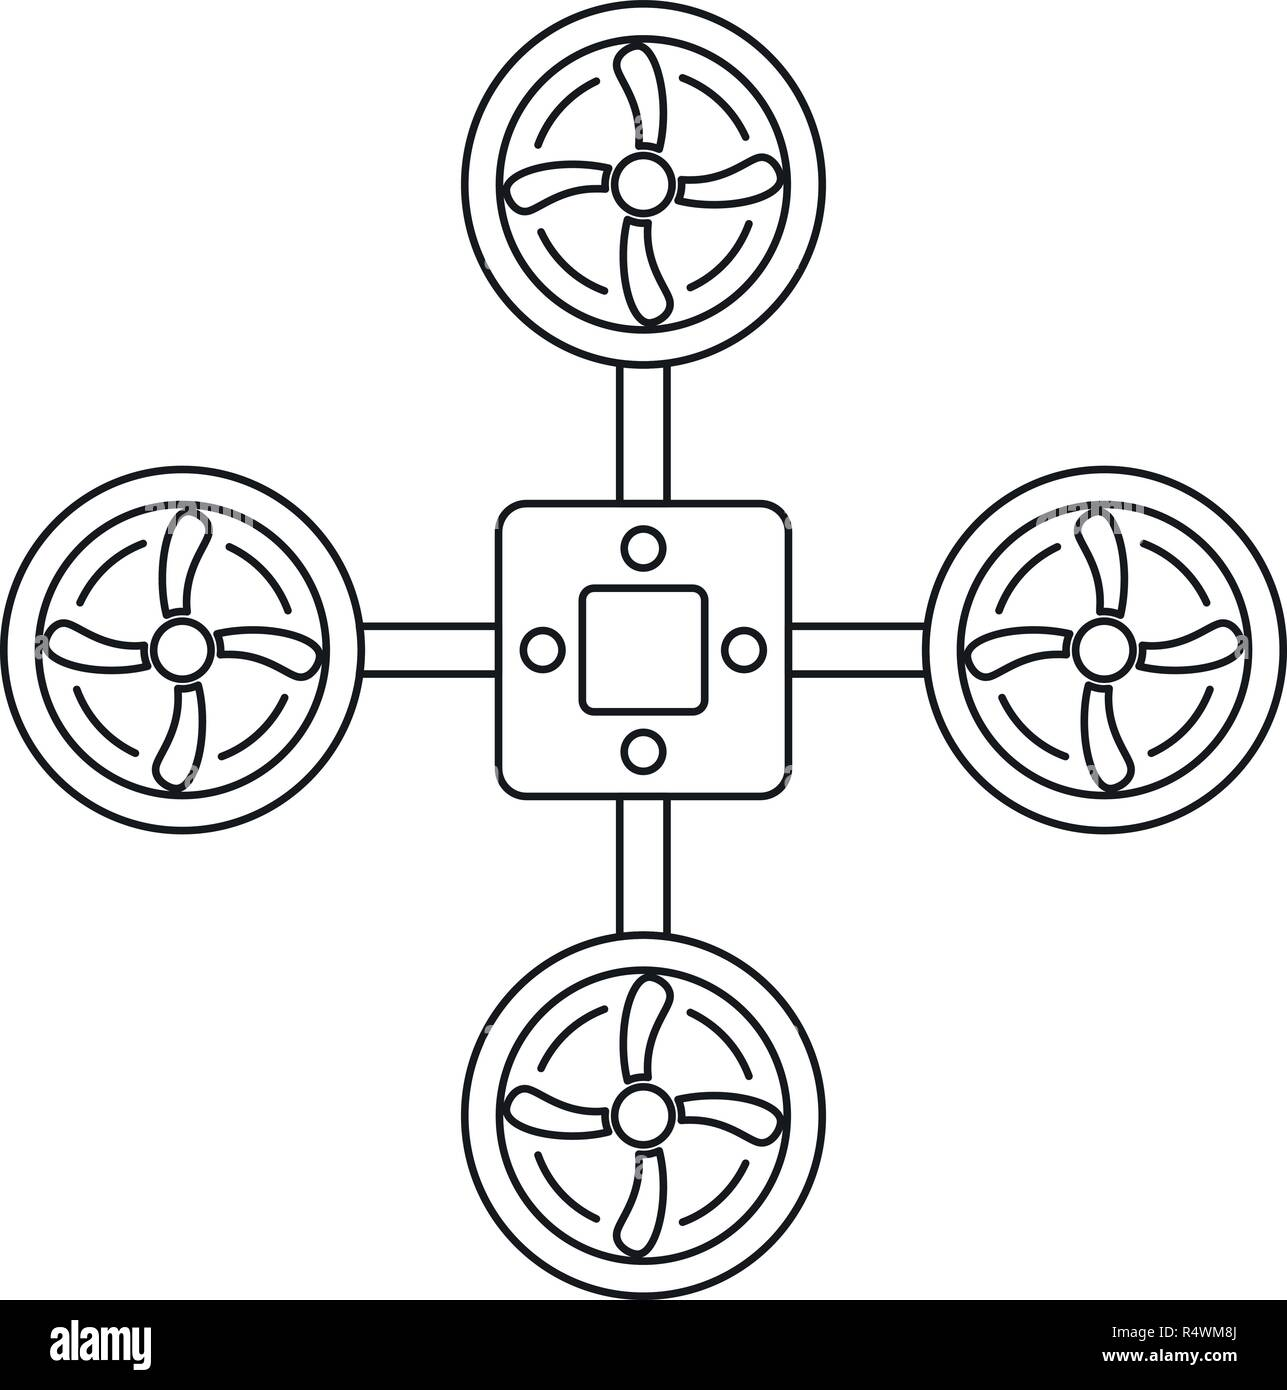 Spy drone icon. Outline spy drone vector icon for web design isolated on white background - Stock Vector